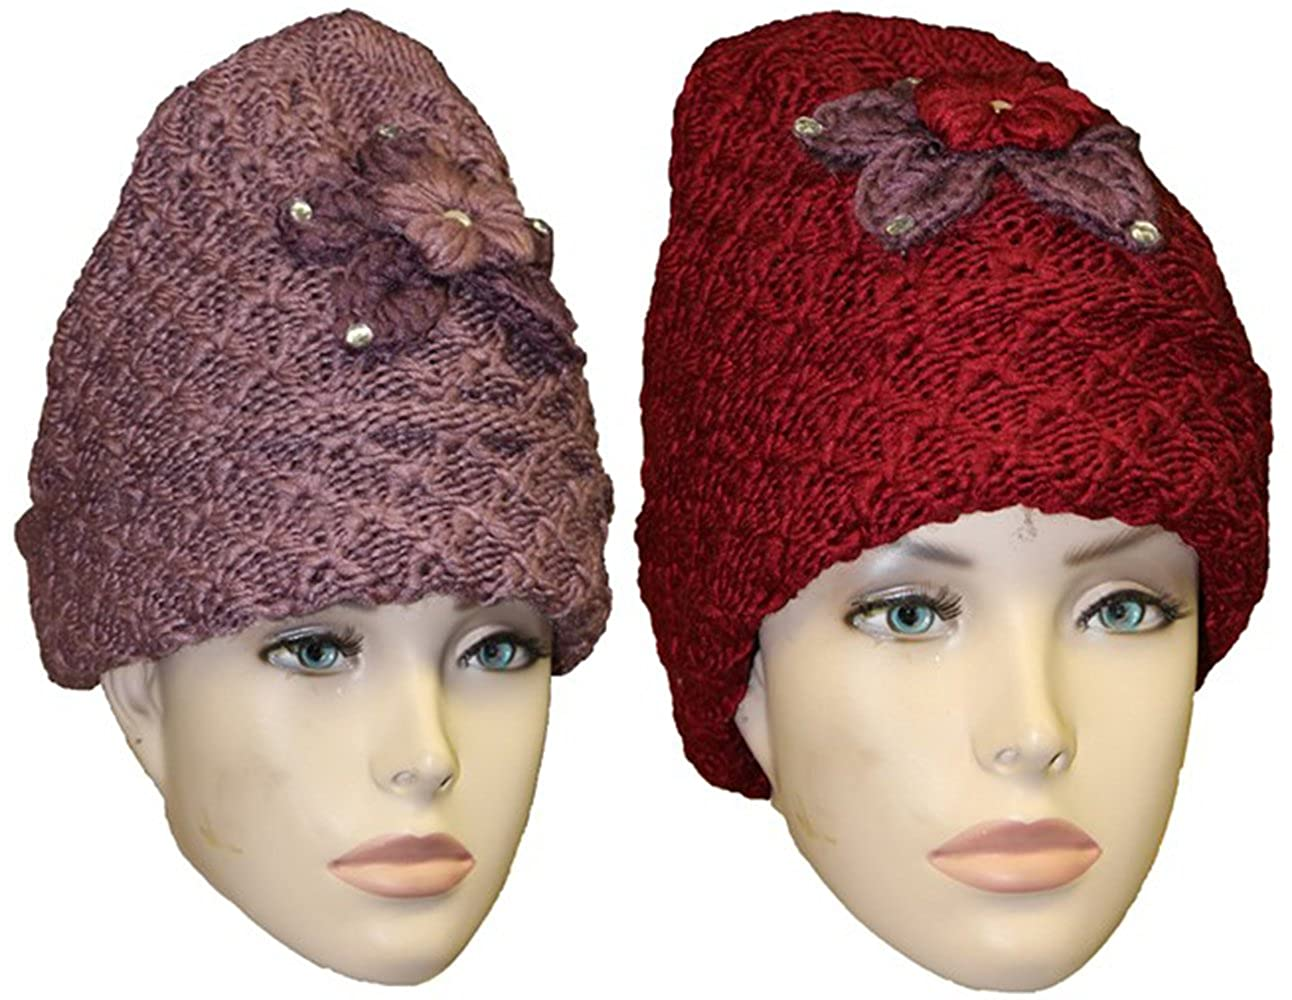 518d06a59cf Heavy Duty 110 Grams Women Insulated Cuffed Knitted Beanie Winter Hat.  (Mauve   Burgundy) at Amazon Women s Clothing store